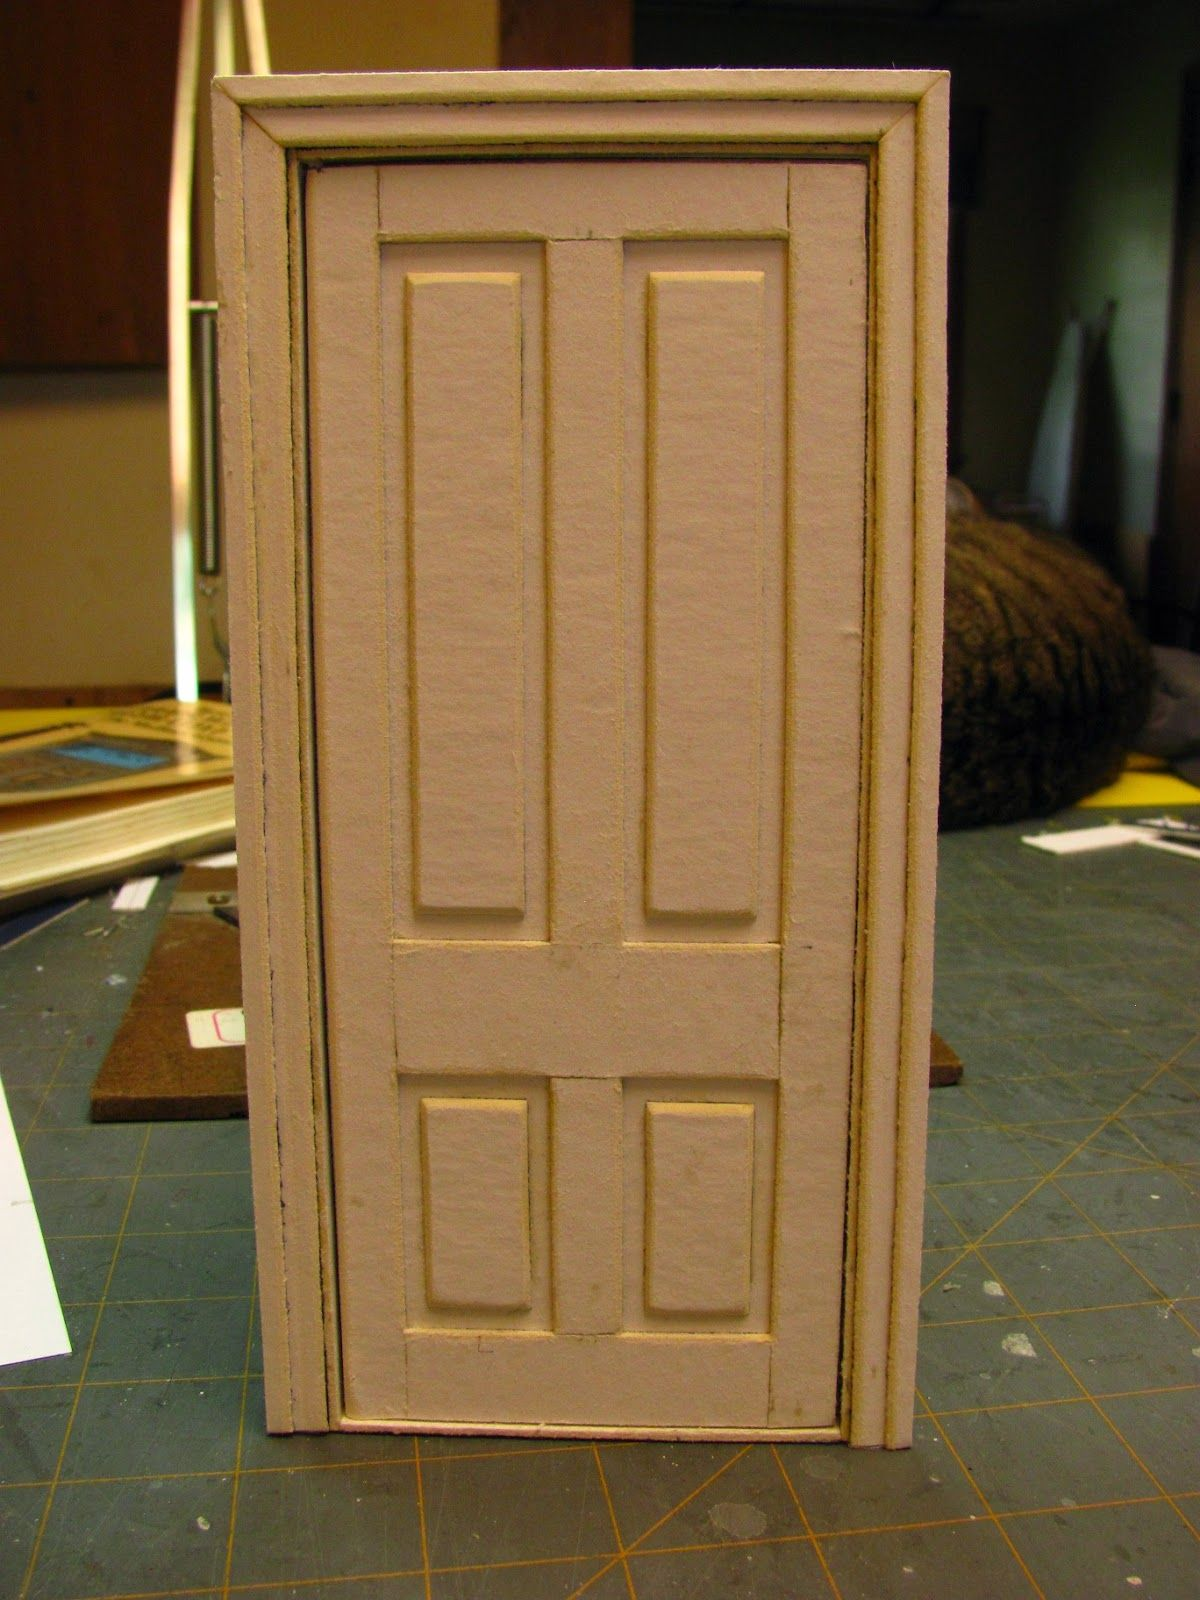 1 INCH SCALE DOLLHOUSE INTERIOR DOOR AND JAMB TUTORIAL - How to make a 1 inch scale dollhouse interior door and jamb from mat board. (Dollhouse Miniature ... & 1 INCH SCALE DOLLHOUSE INTERIOR DOOR AND JAMB TUTORIAL - How to ...